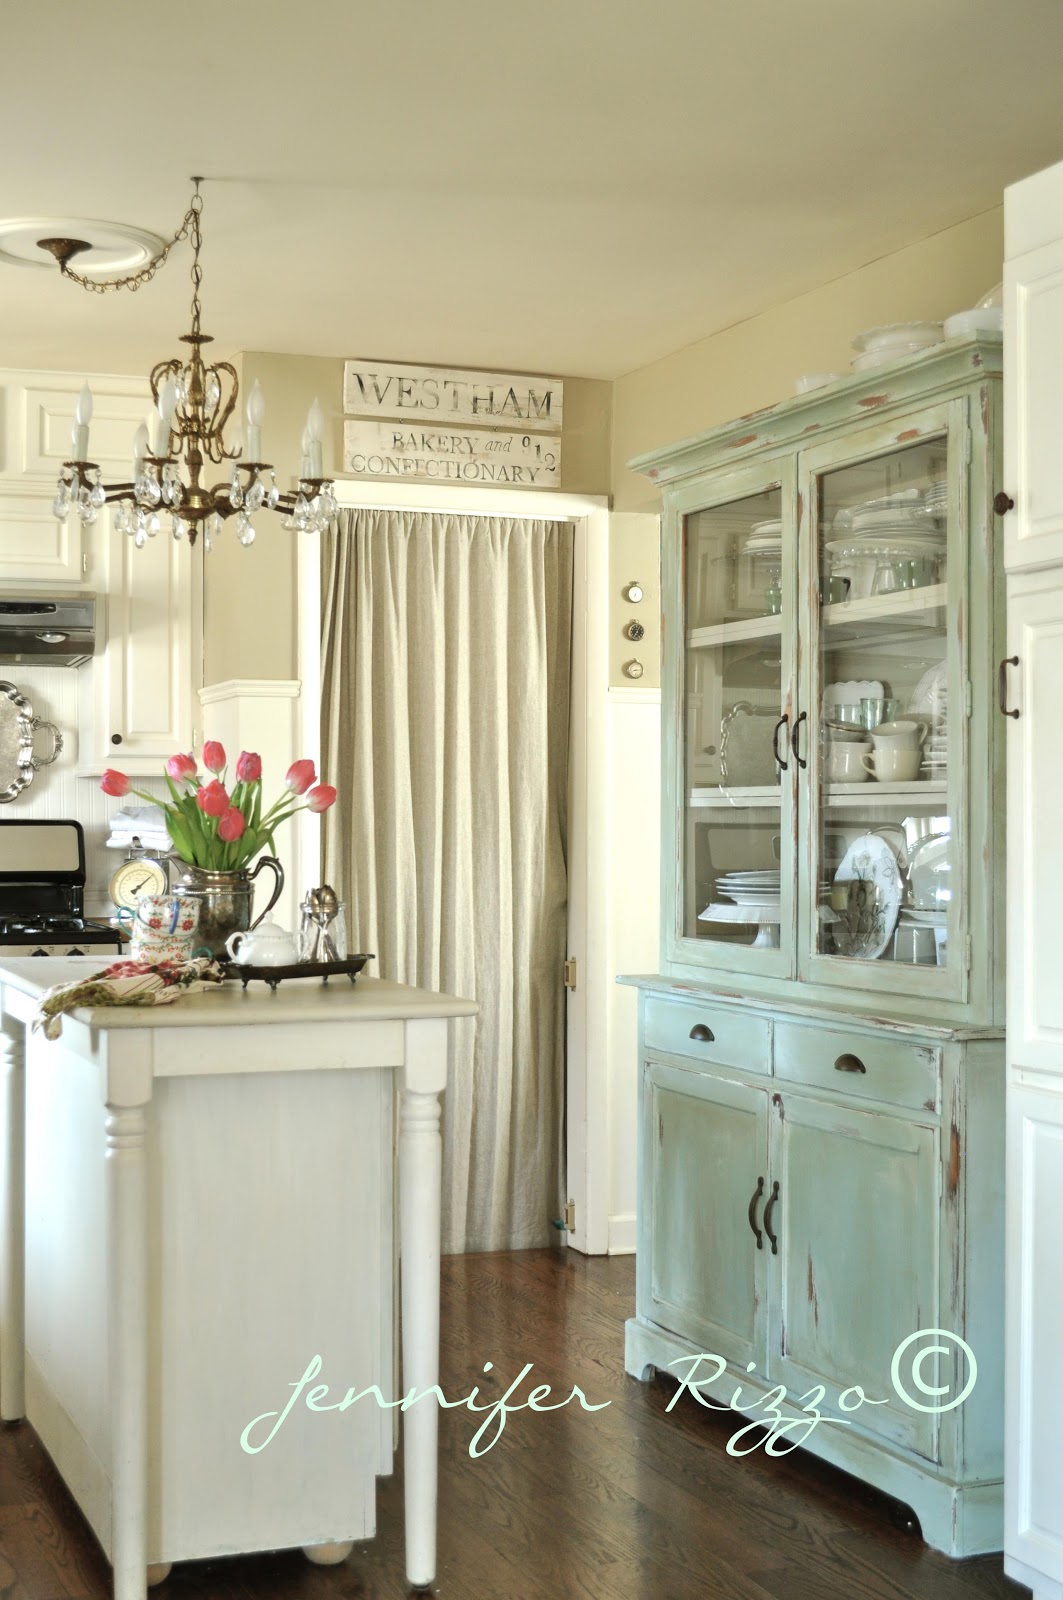 How to make a new piece of furniture look old with paint for Kitchen colors with white cabinets with out door wall art